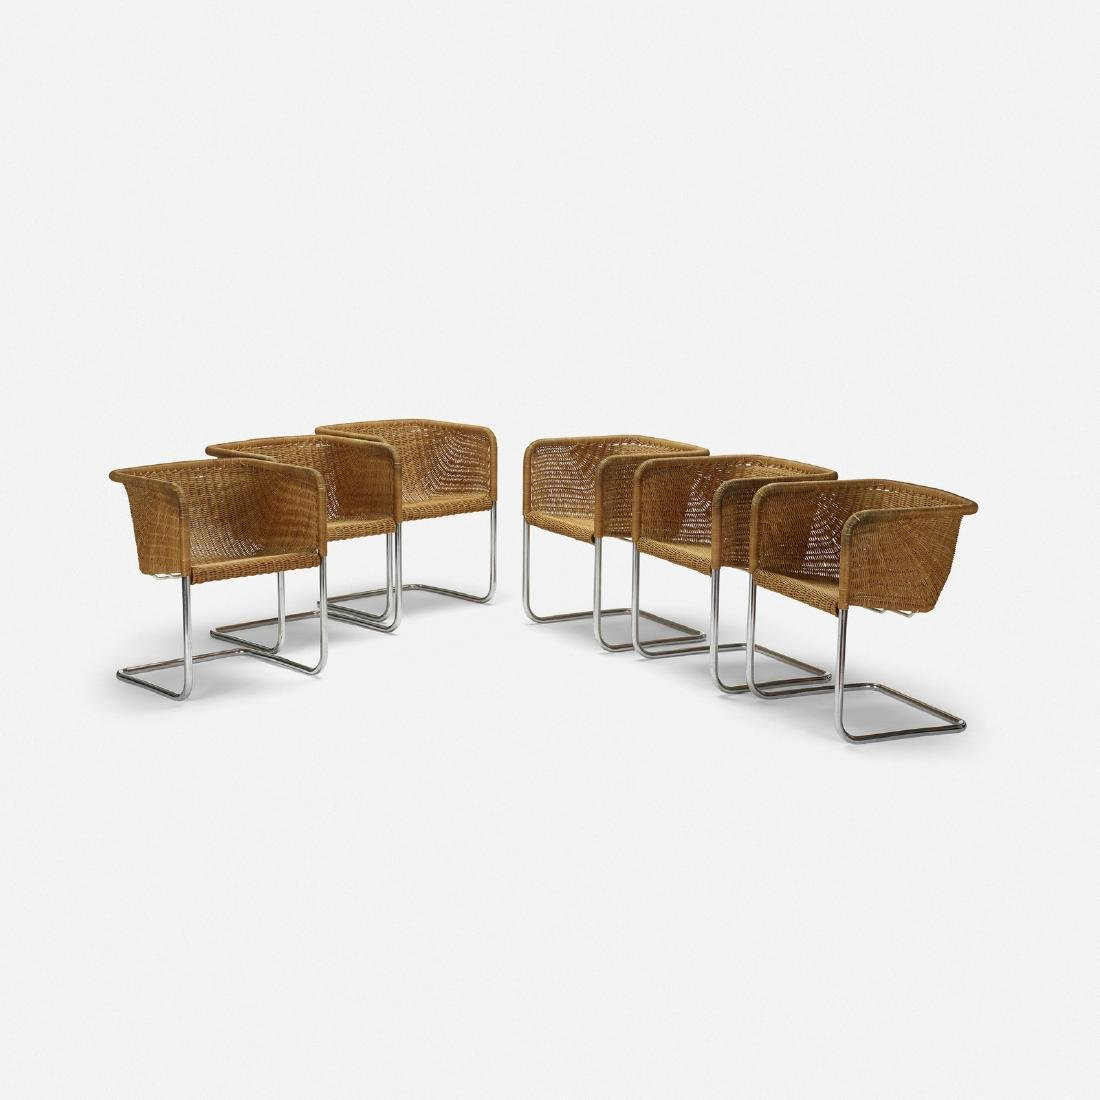 Preben Fabricius & Kastholm, dining chairs, set of 6